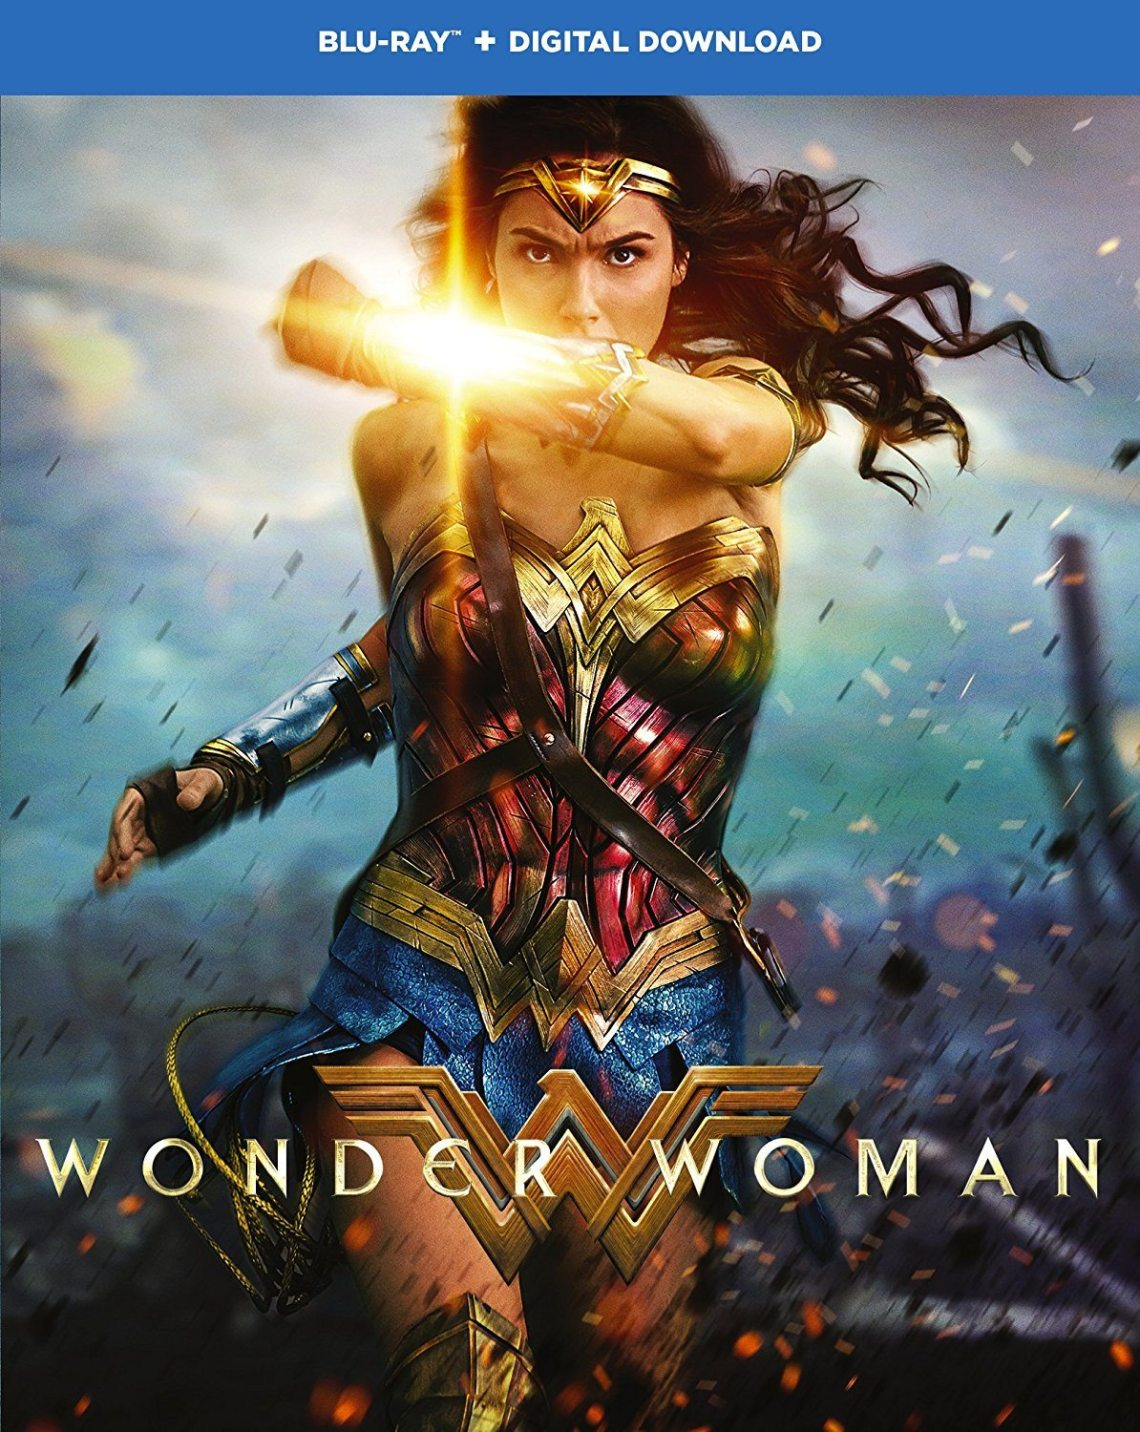 Wonder Woman Blu-ray box art Courtesy of Warner Bros.